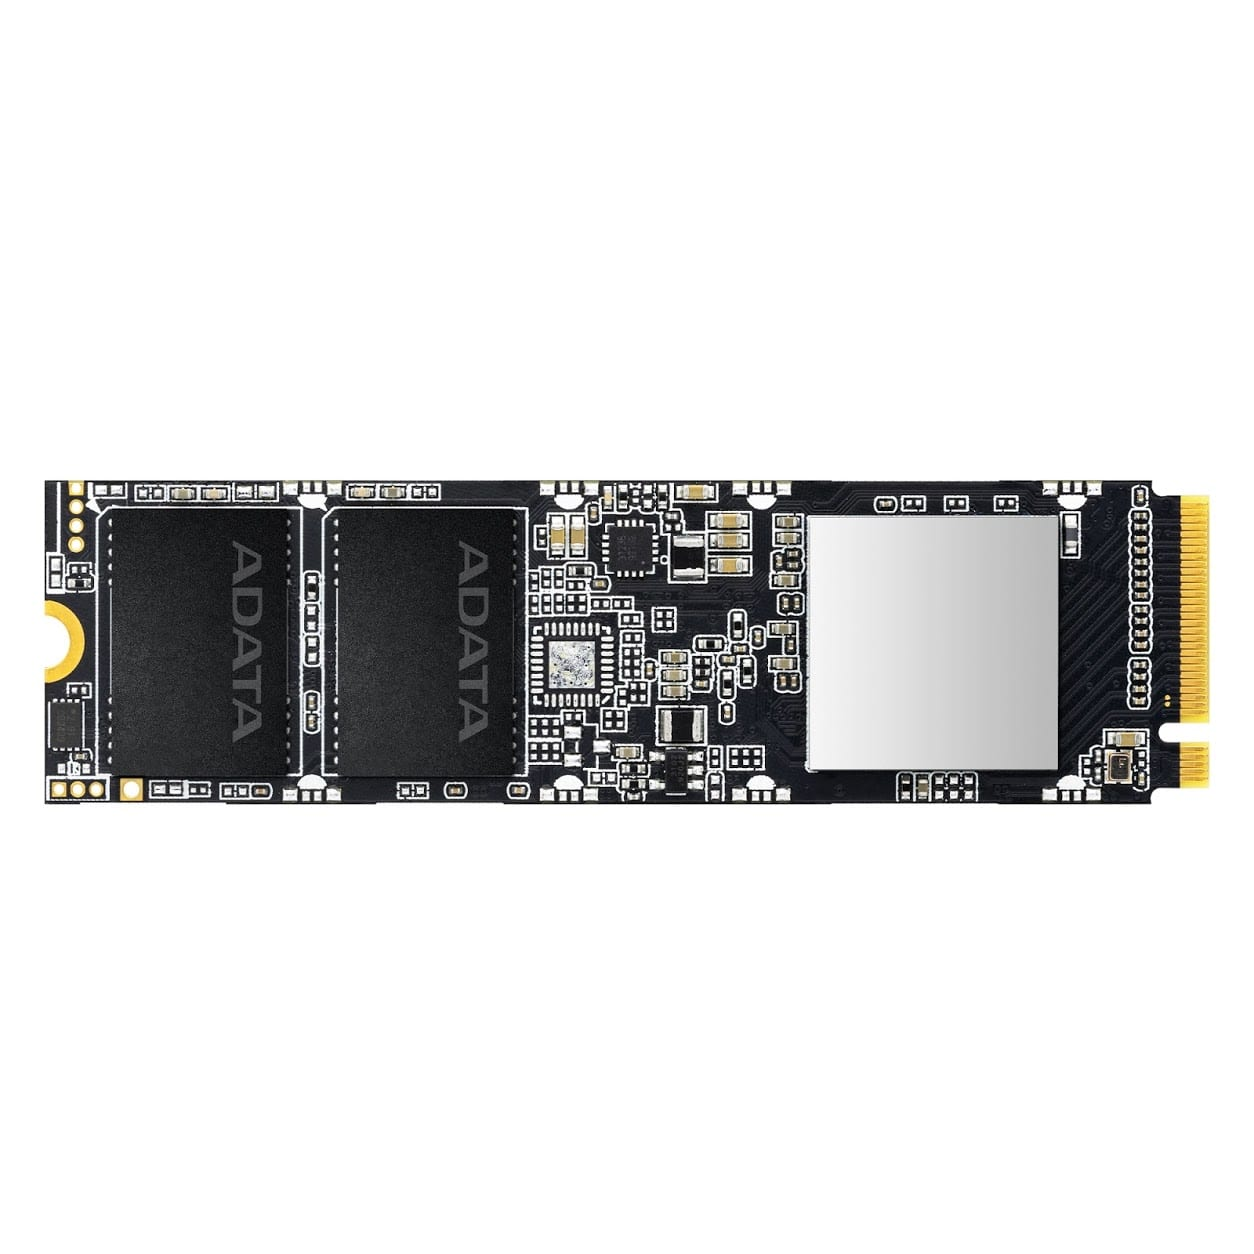 ADATA XPG SX8100 Series: 512GB PCIe Gen3x4 M.2 2280 SSD for $62.78 + FS